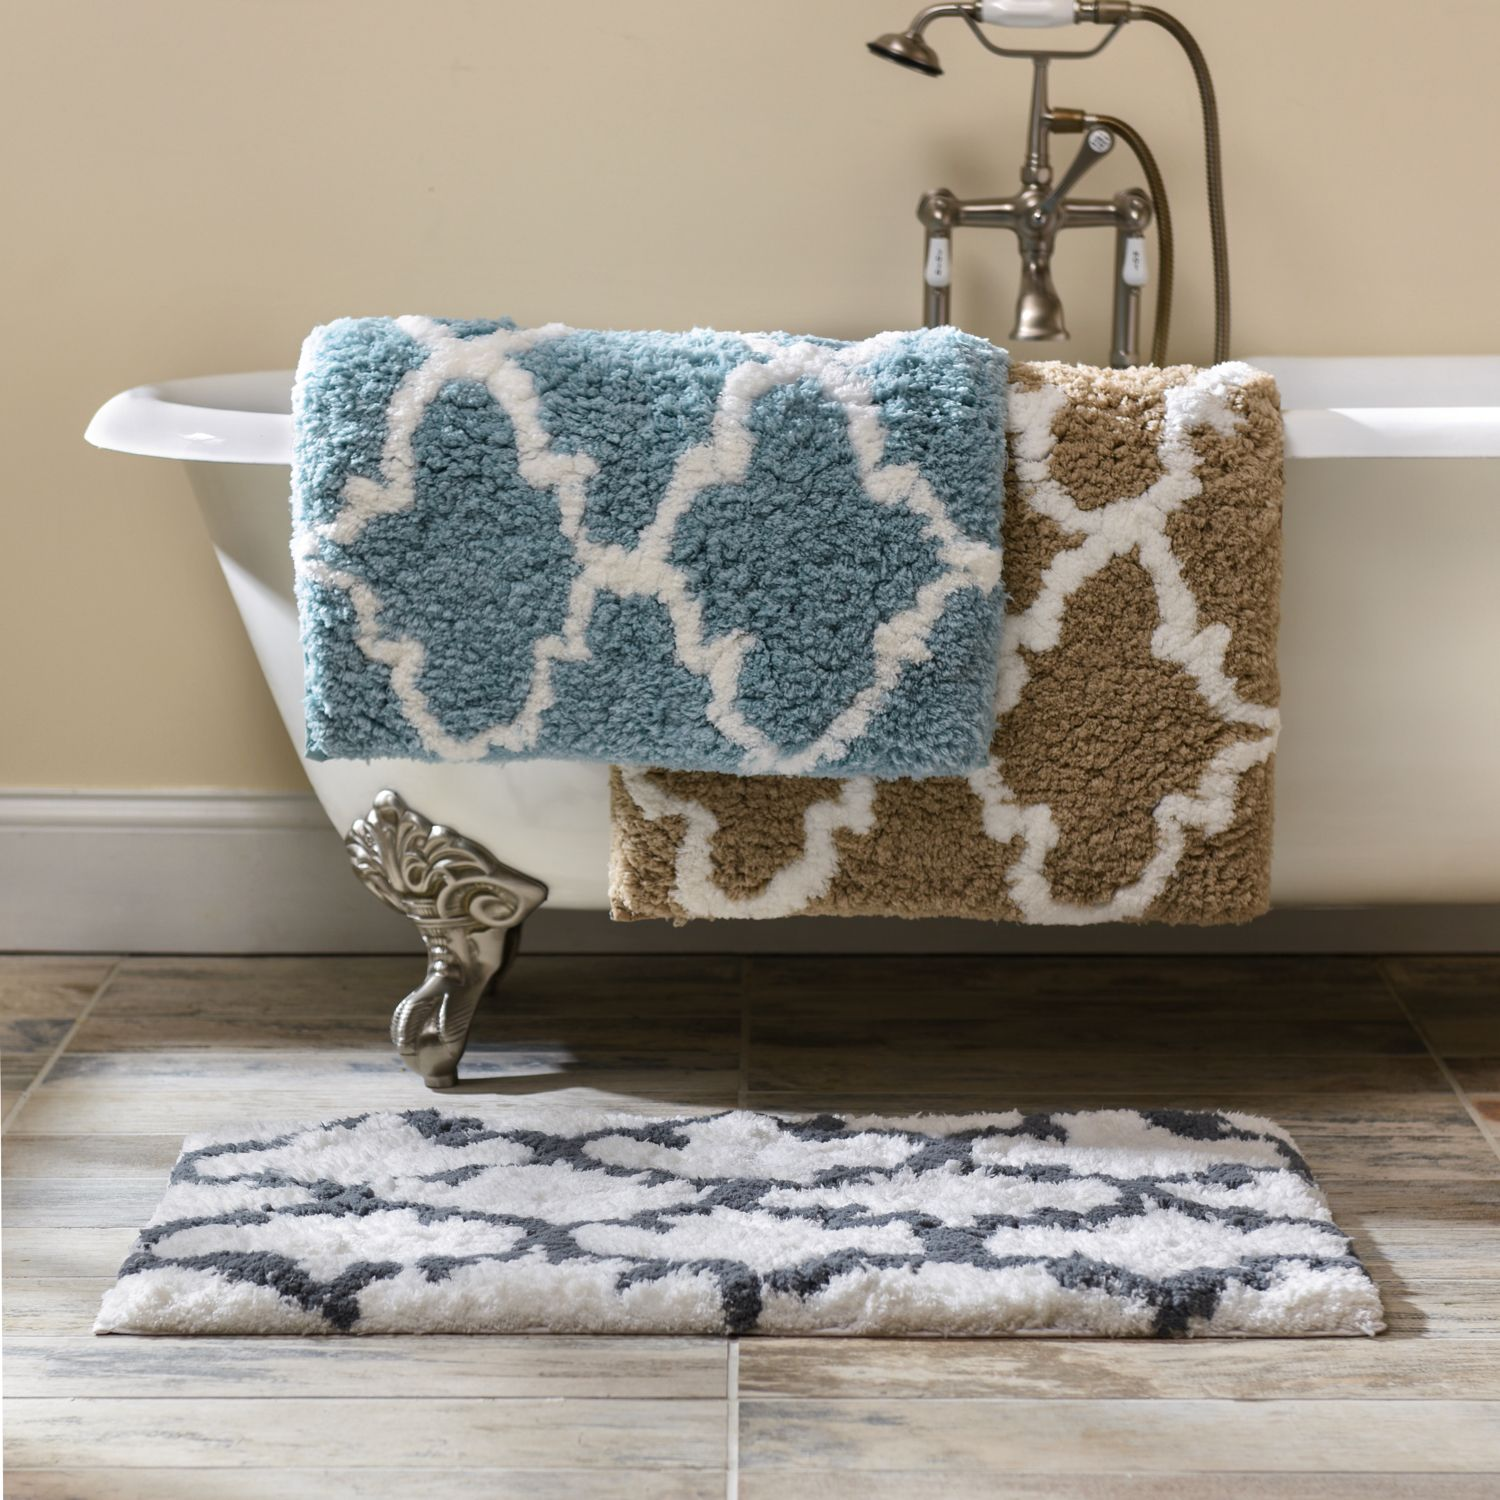 Shop Our Collection Of Bath Mats And Rugs For A Style And